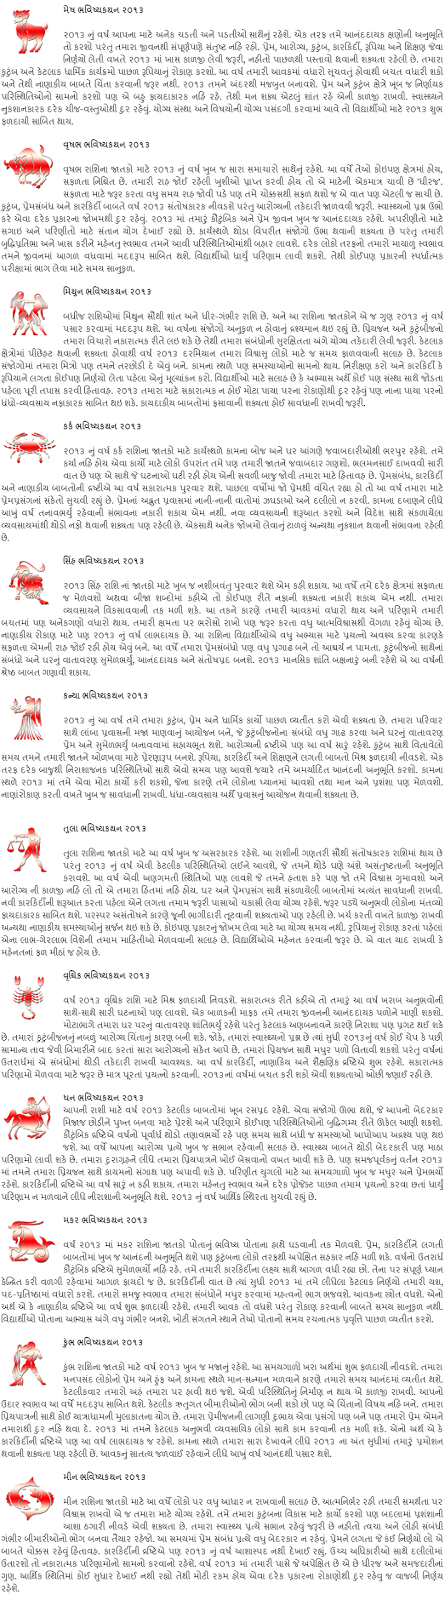 Gujarati+Astrology+2013+2013-08-16+11-03-32.png